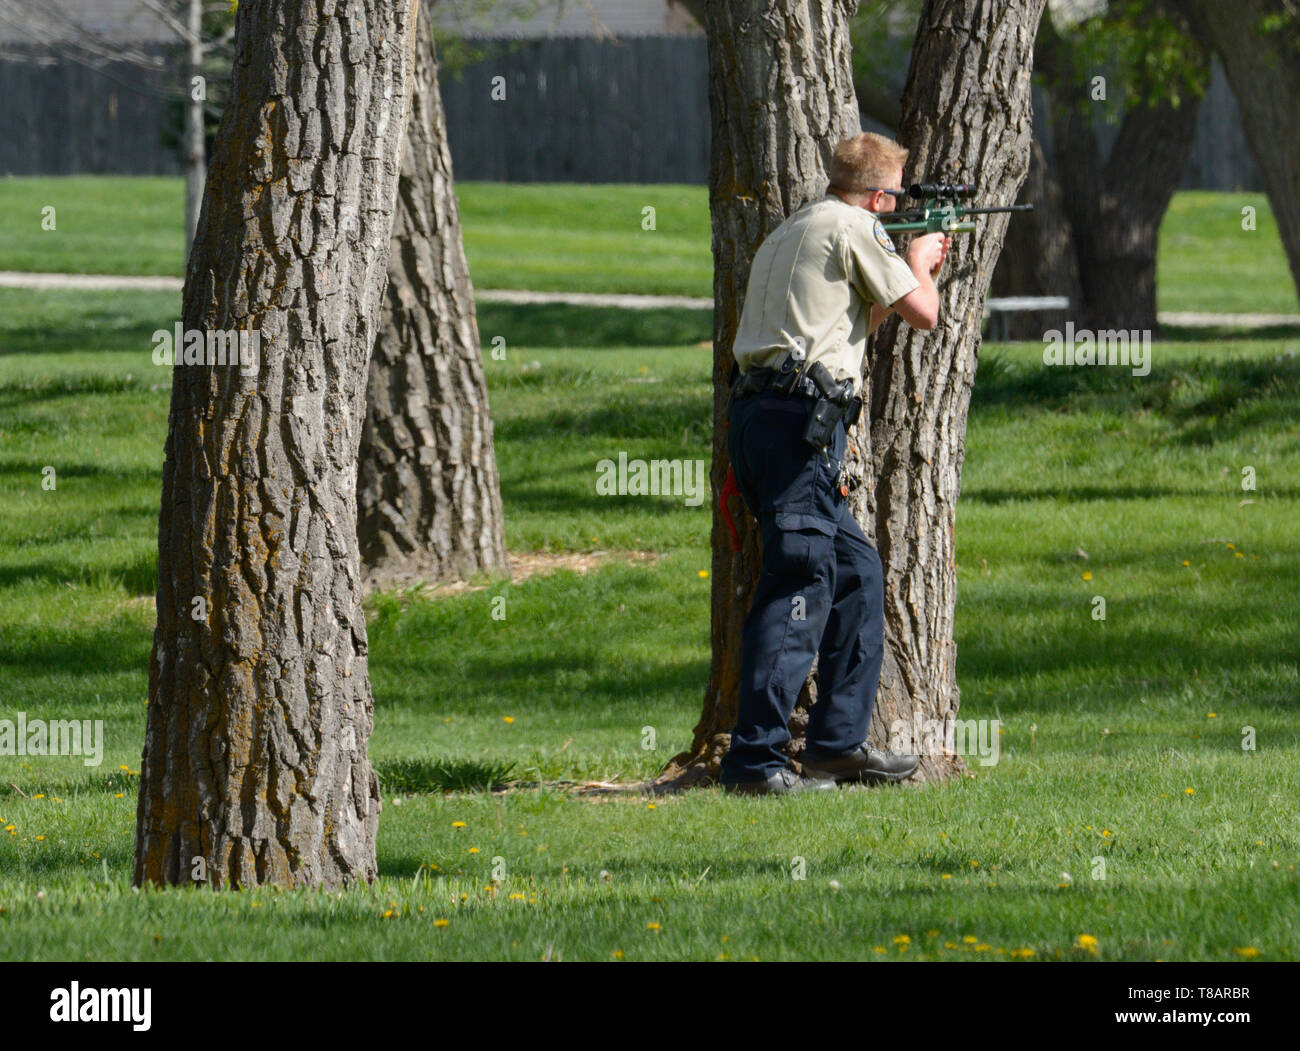 Tranquilize Stock Photos & Tranquilize Stock Images - Alamy